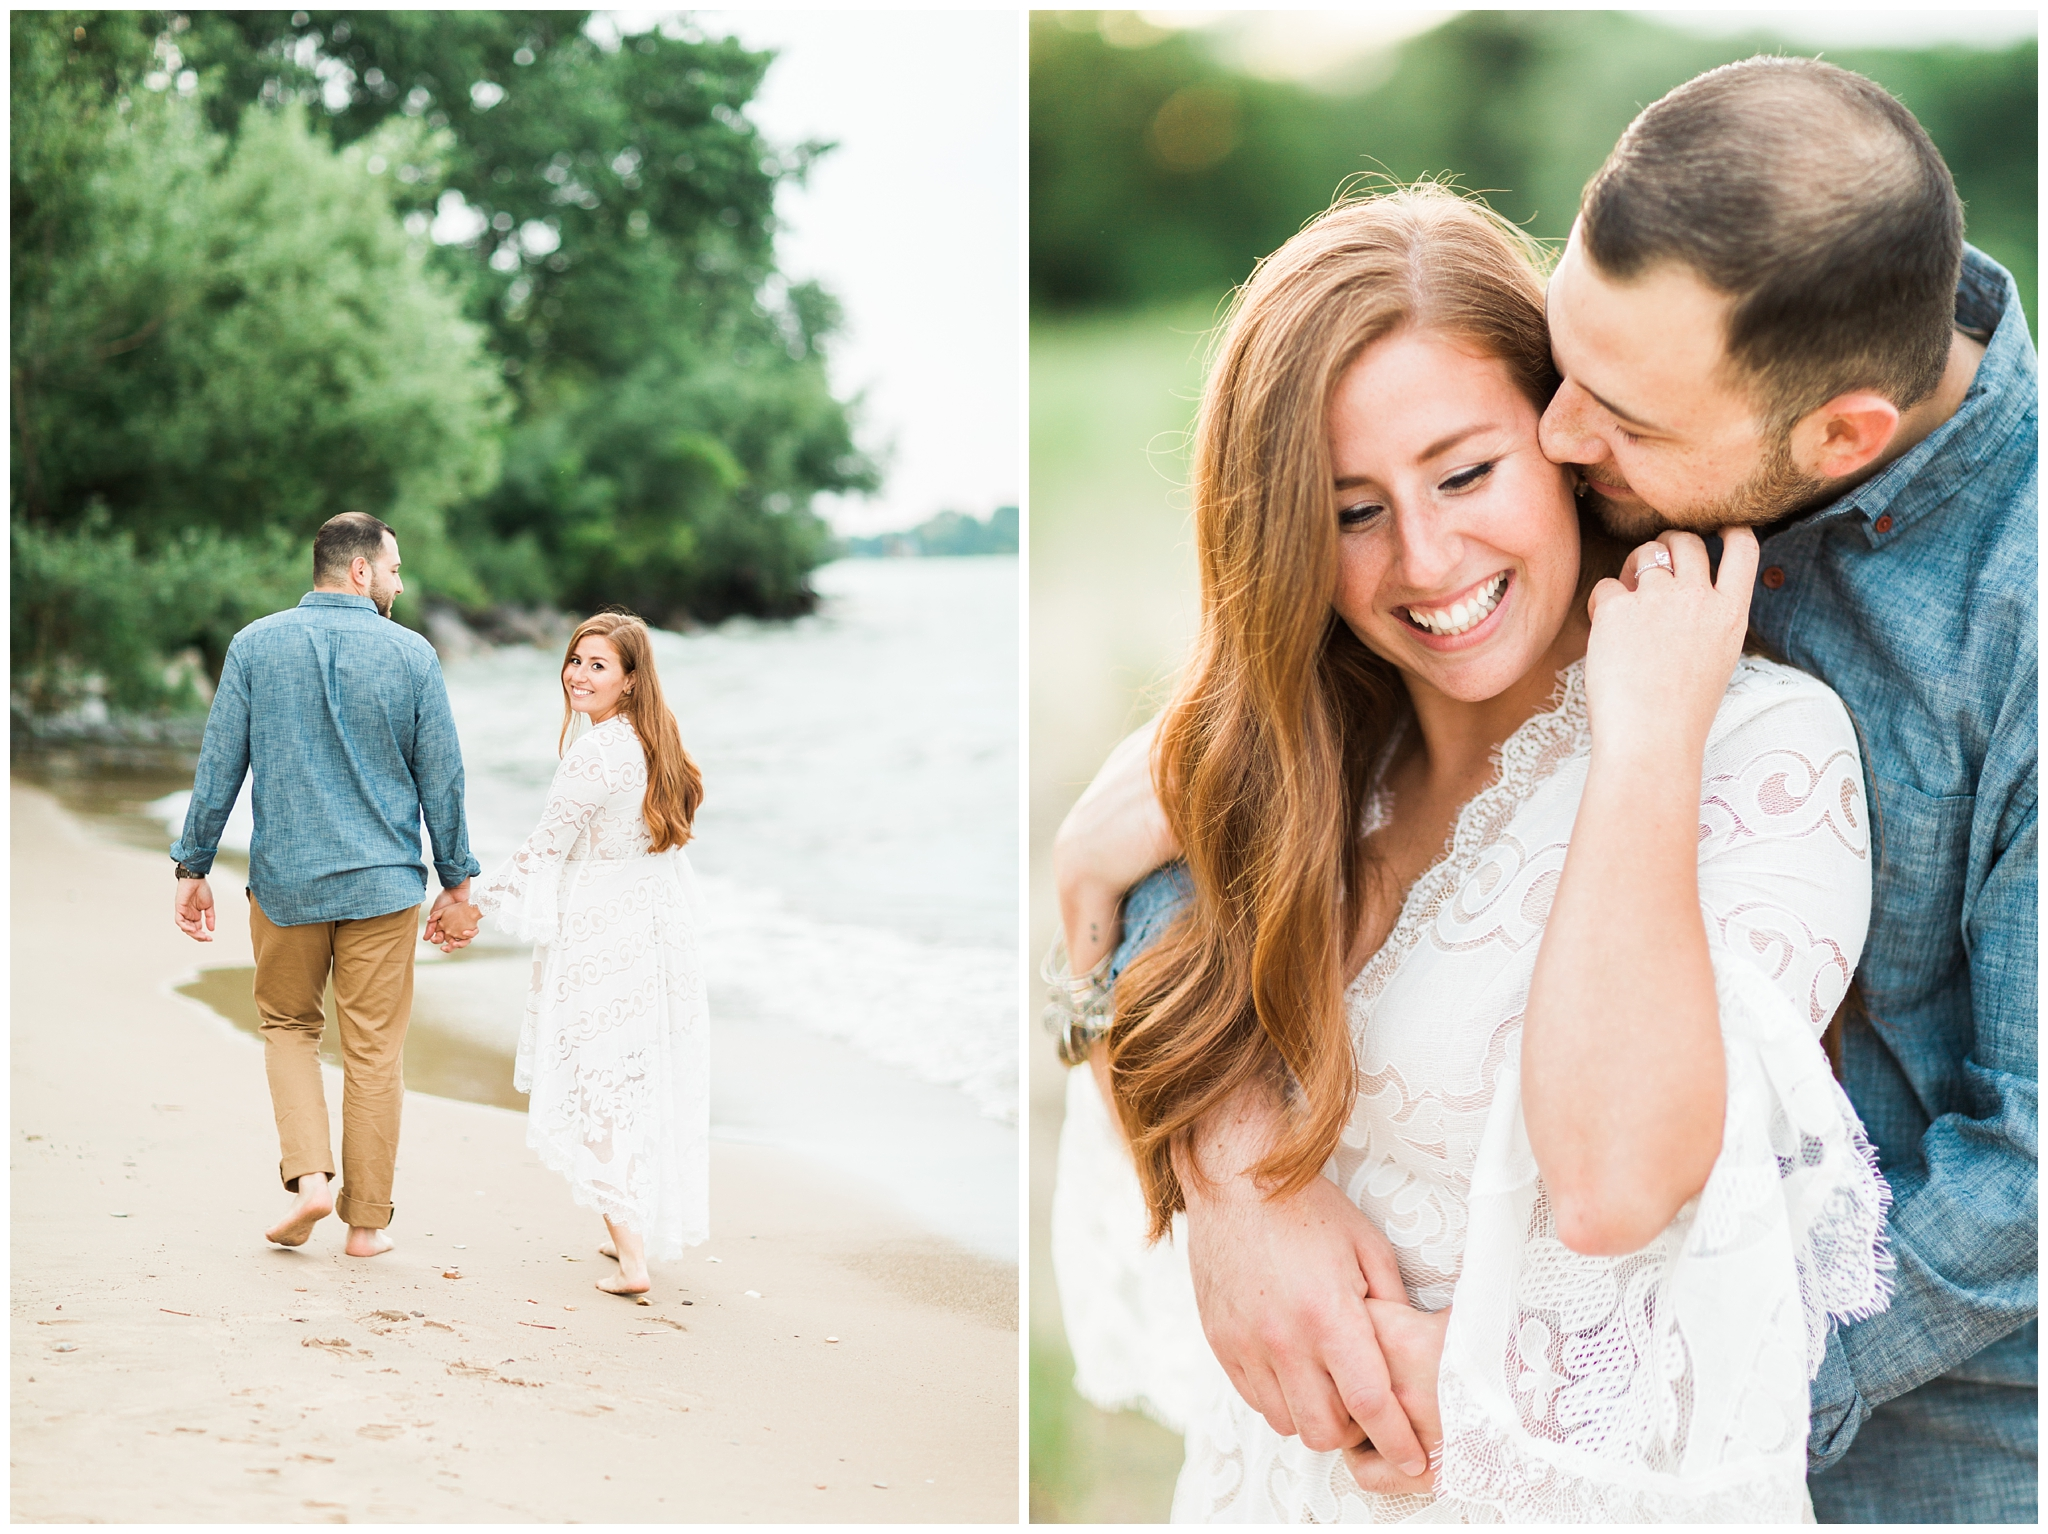 RebeccaHaleyPhotography_chicagoengagementsession_lakemichiganengagementsession_coloradoengagementphotographer_evanstonengagementphotographer_lighthousebeach_lighthousebeachengagementsession_0019.jpg